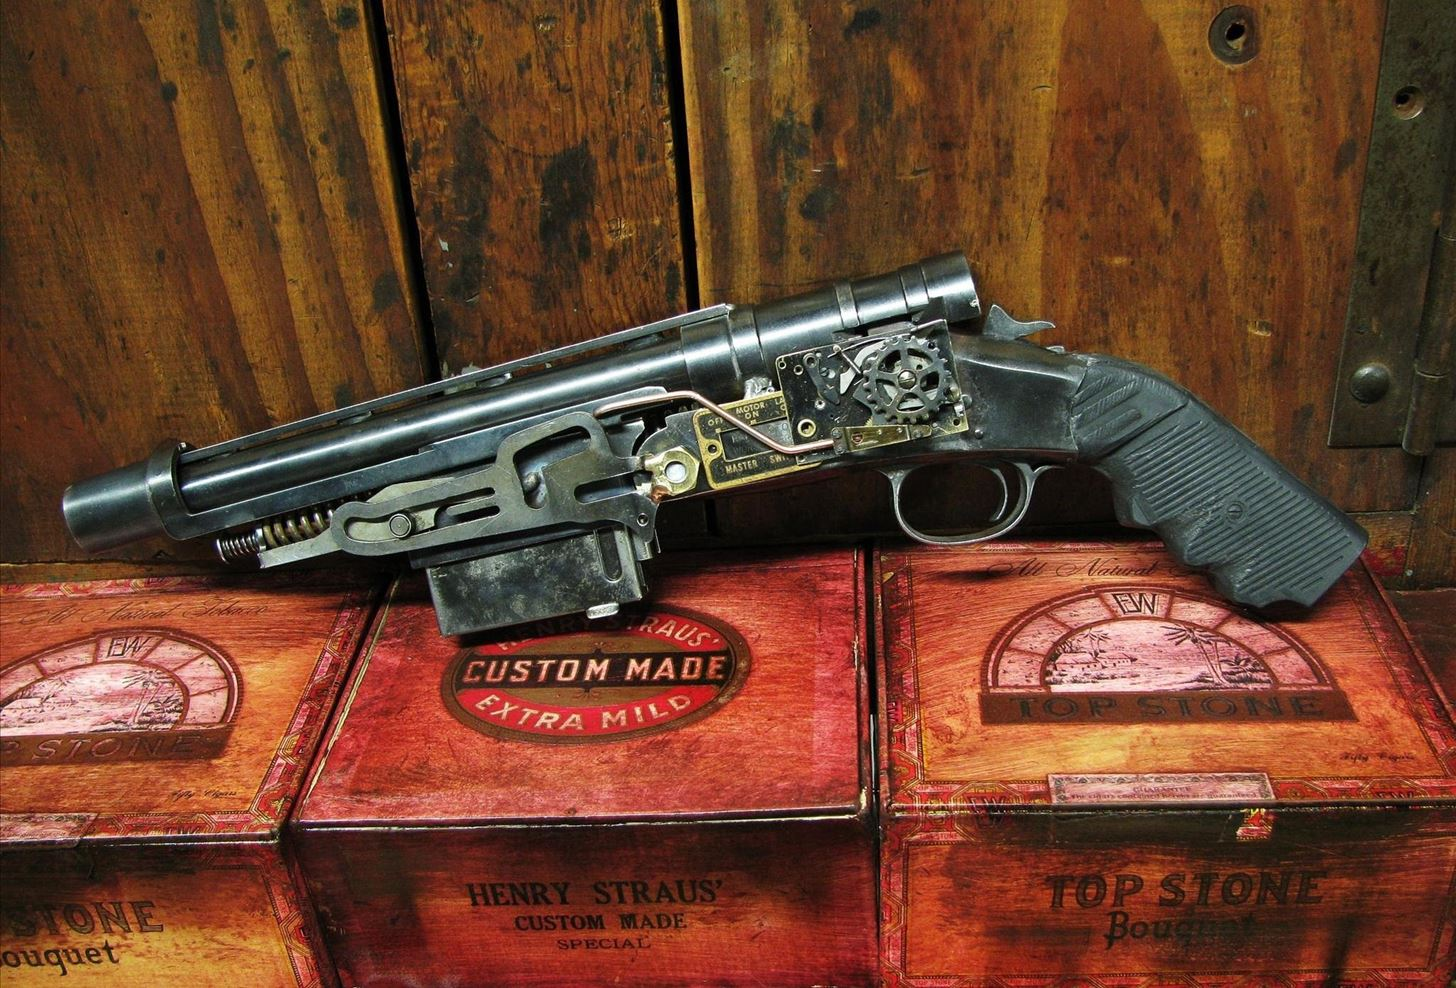 Steampunks and Gun Control: Is Gun Culture Echoed Within Steampunk?